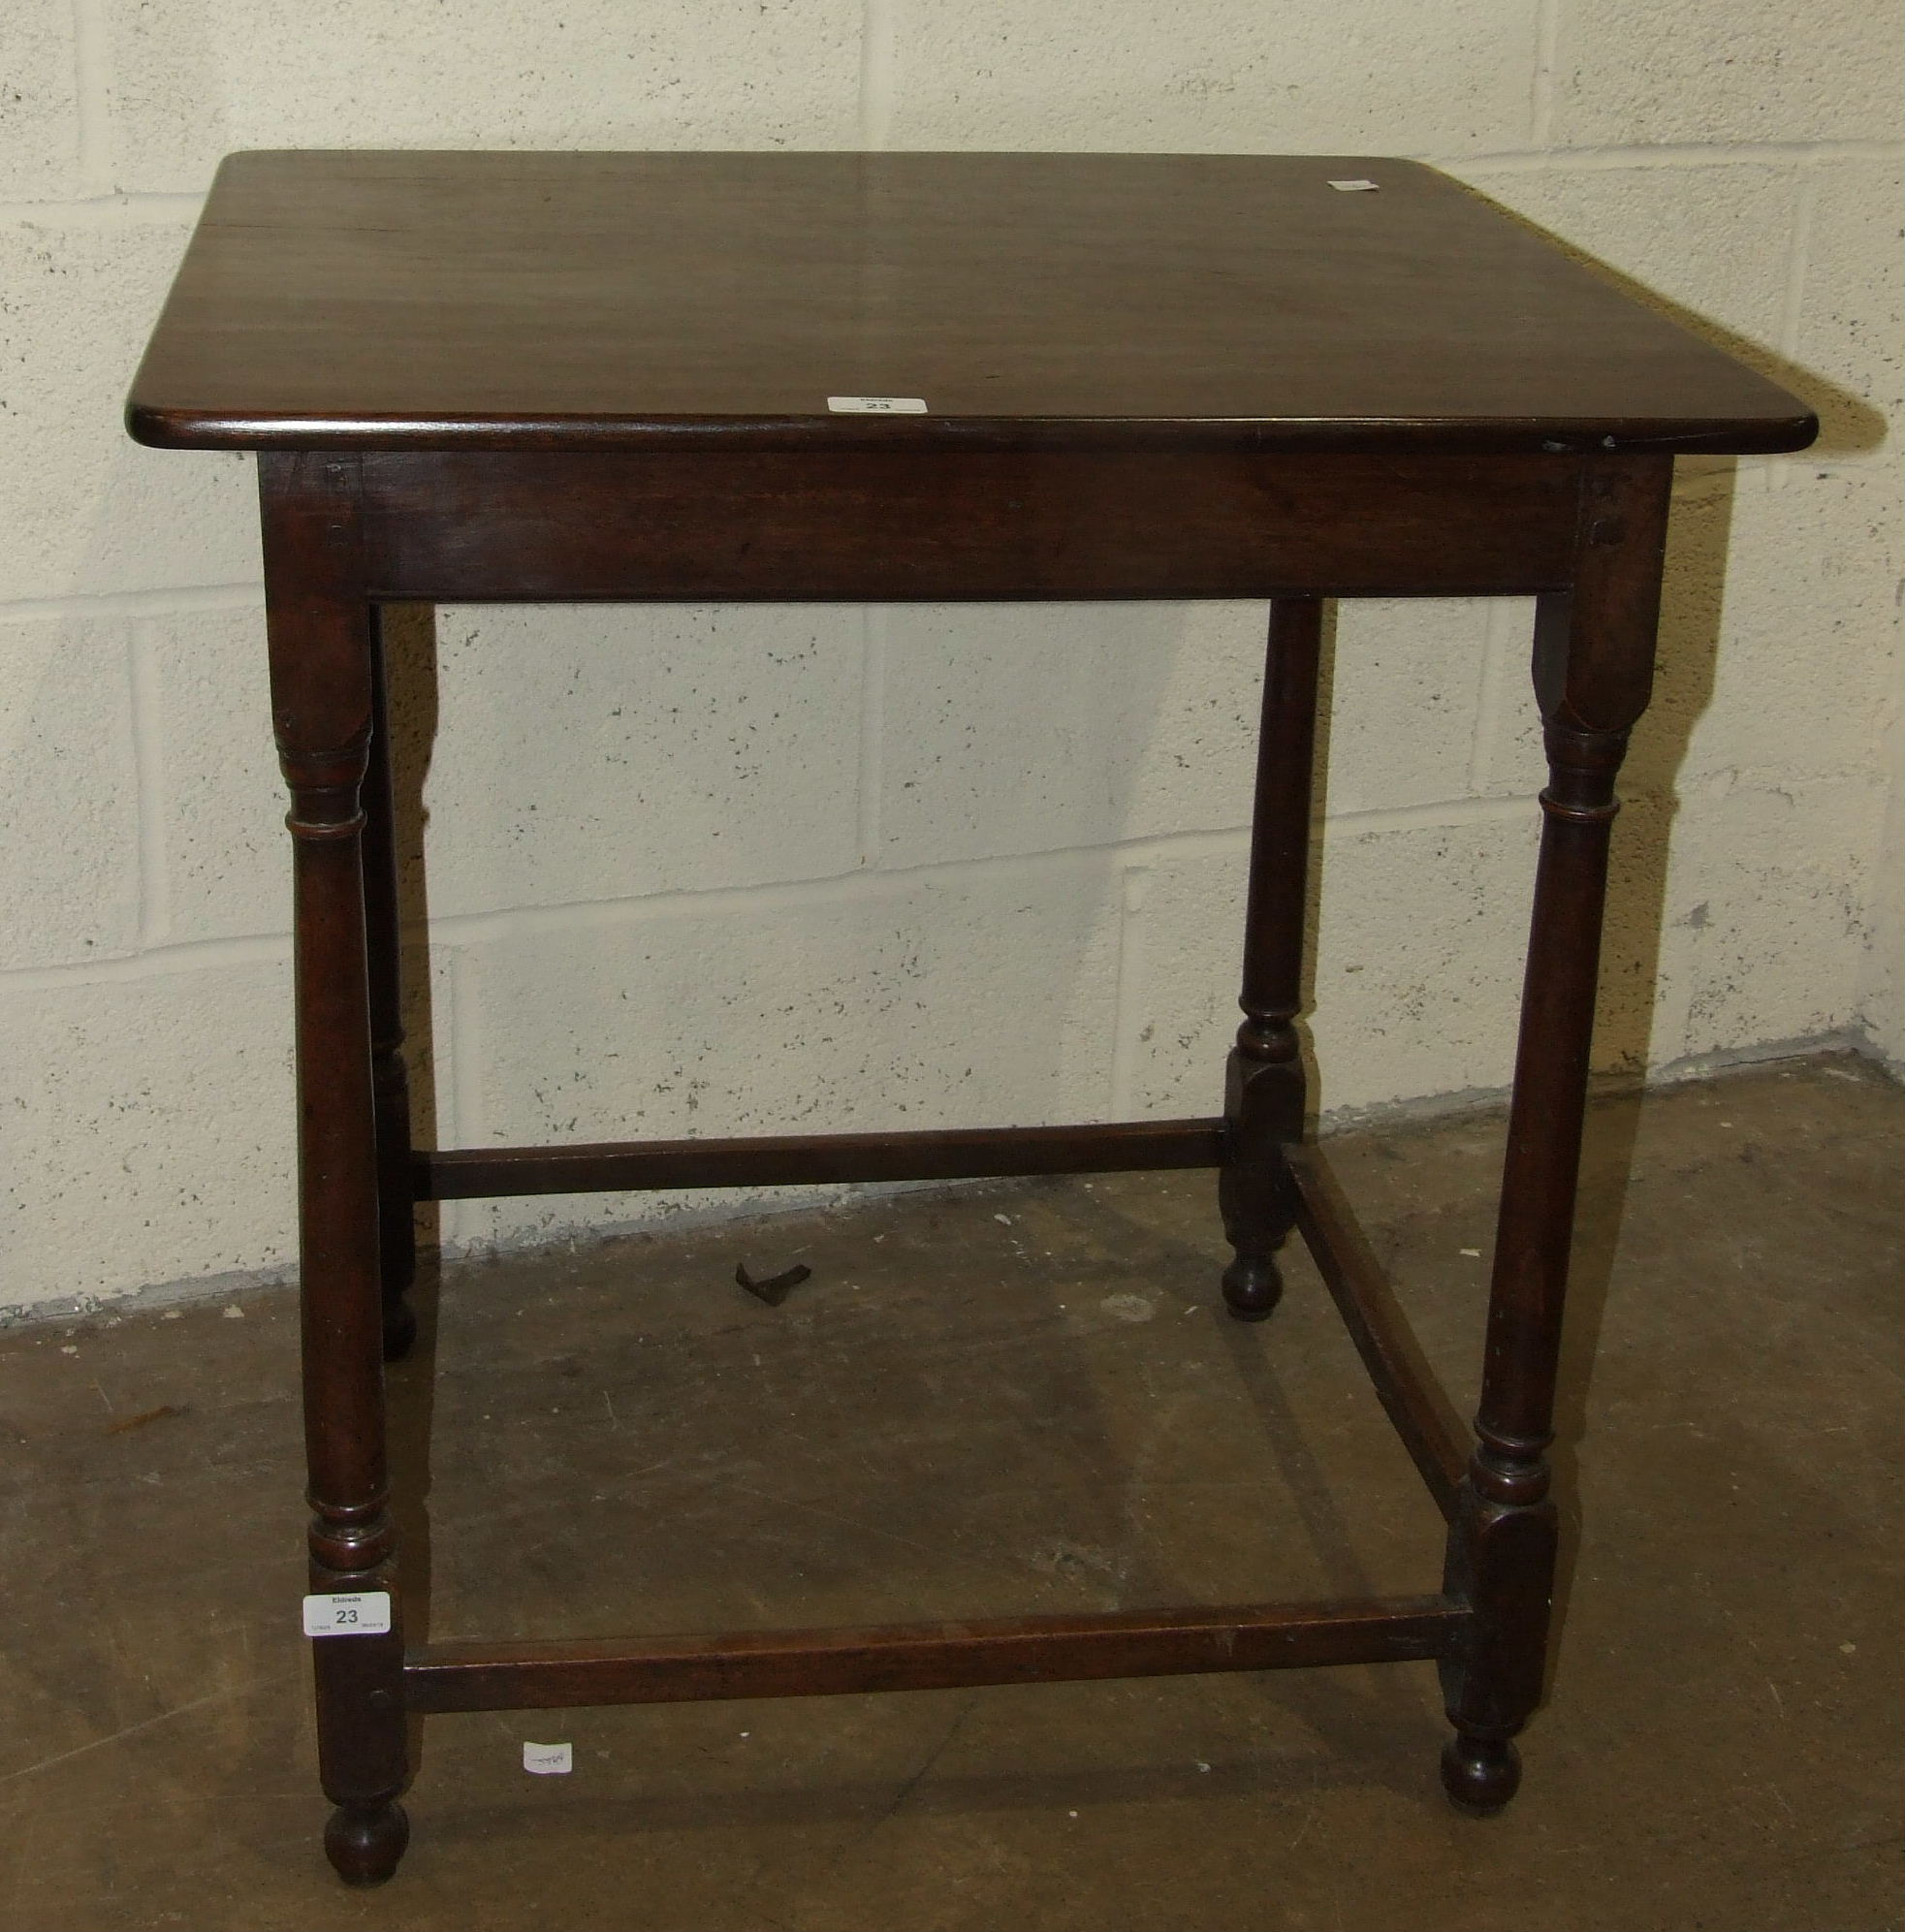 Lot 23 - A mahogany occasional table on turned legs united by stretchers, 67 x 59cm, 72cm high.